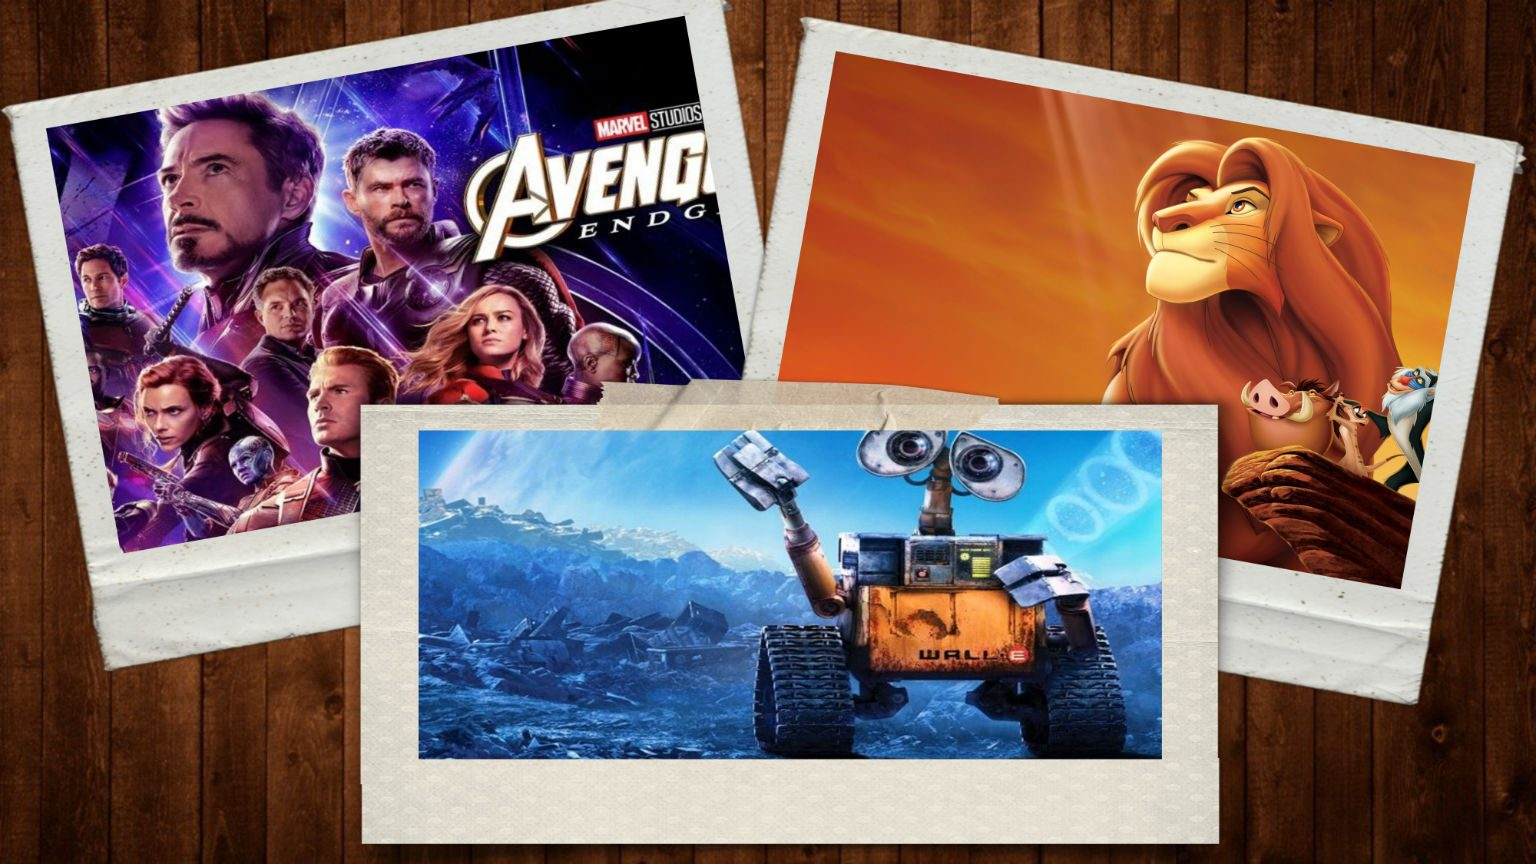 Best Disney+ Action Movies Avengers, Wall-E, Lion King.